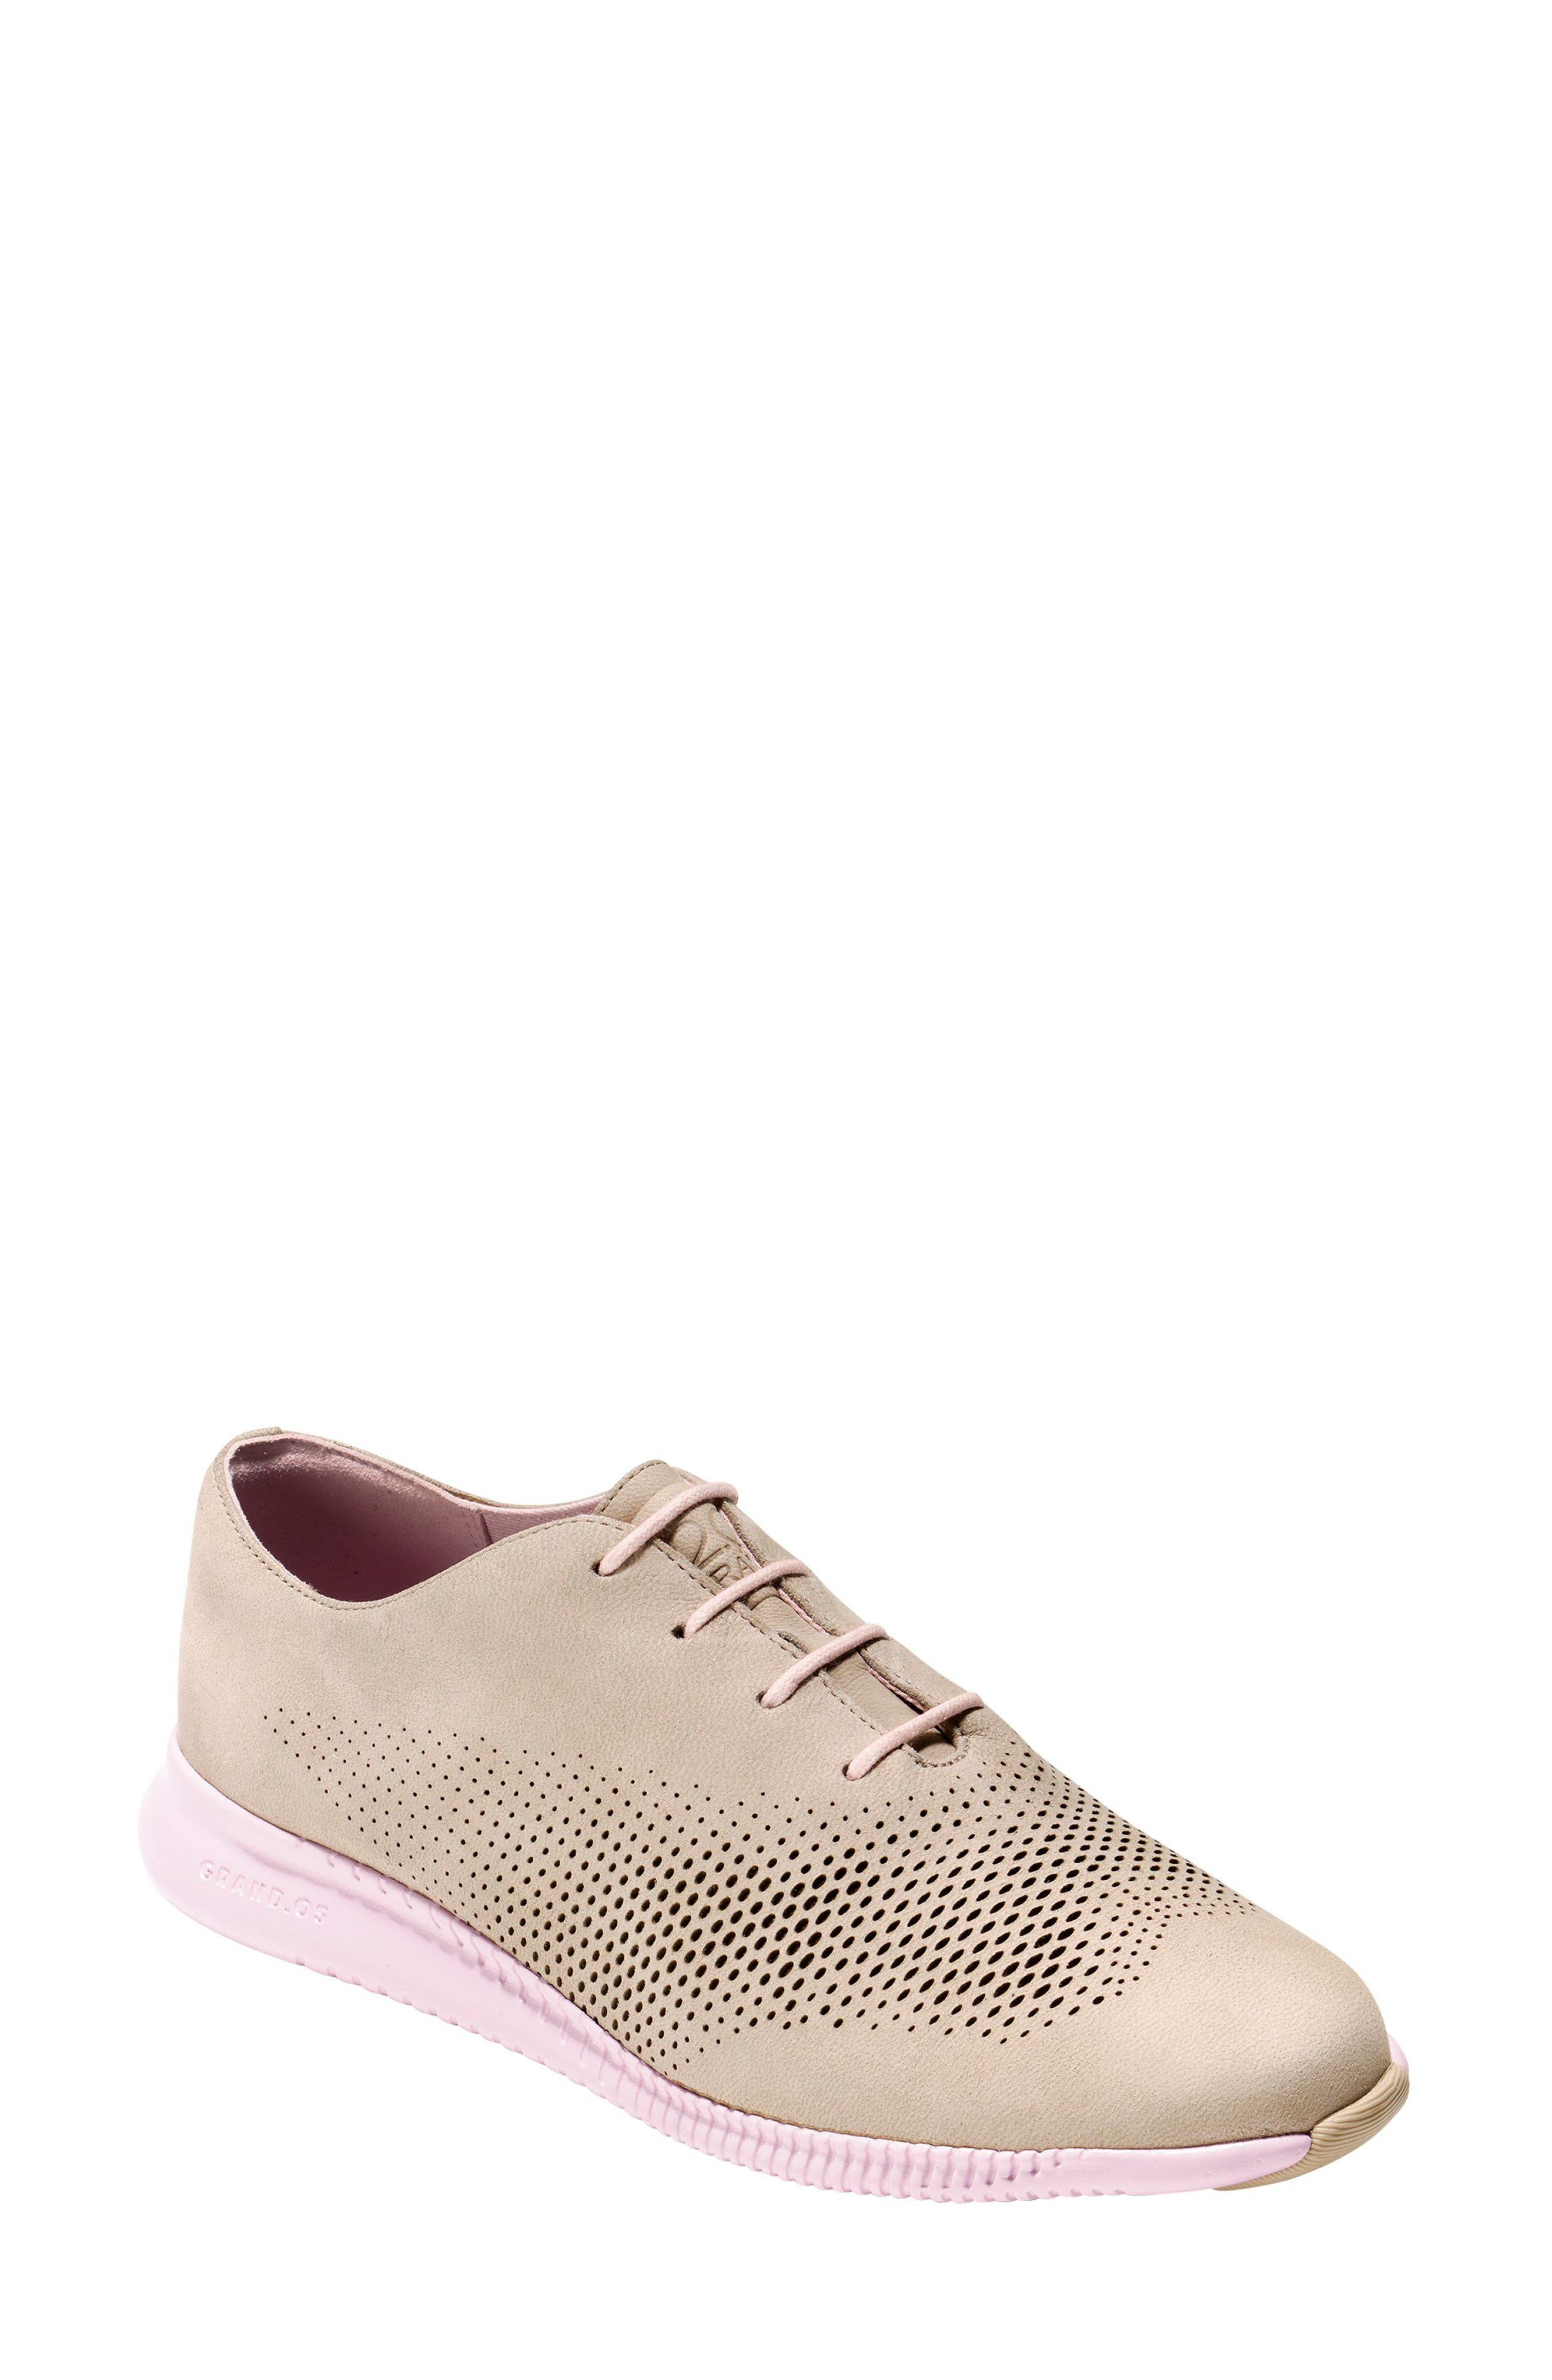 Main Image - Cole Haan 'ZeroGrand' Perforated Wingtip (Women) (Nordstrom  Exclusive